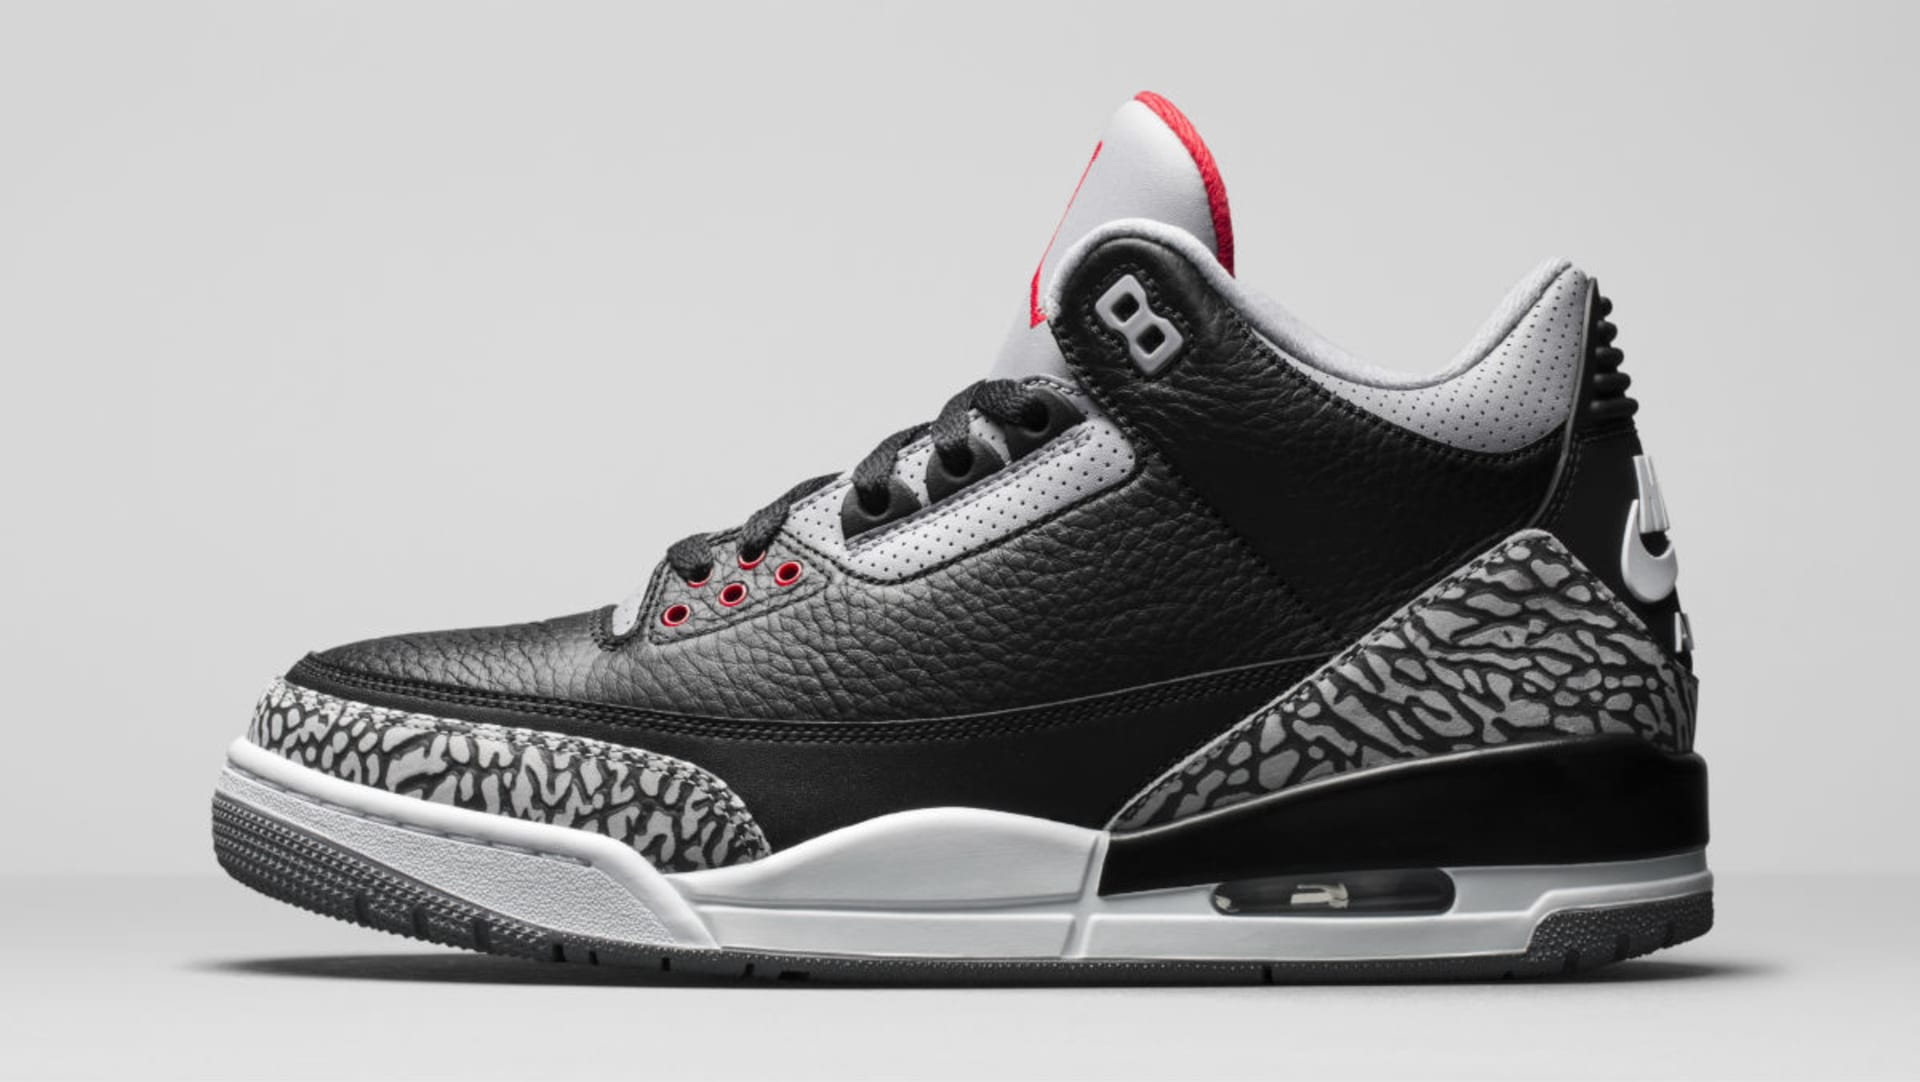 8db56f7db Air Jordan 3 III Black Cement Release Date 854262-001 Profile